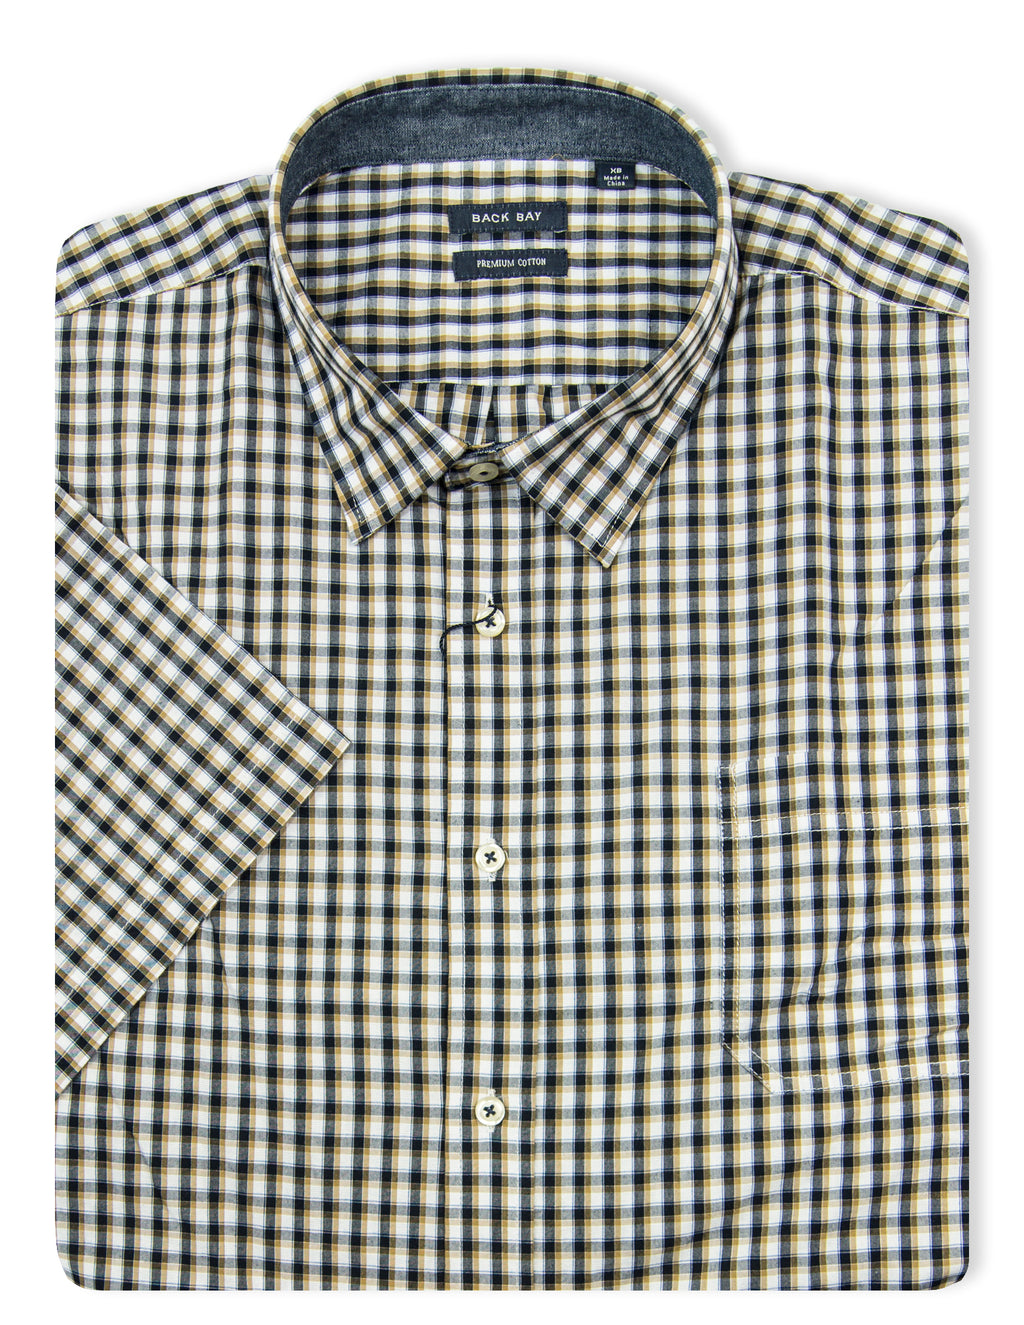 Back Bay Nutmeg G640210XL Cotton S/S Shirt